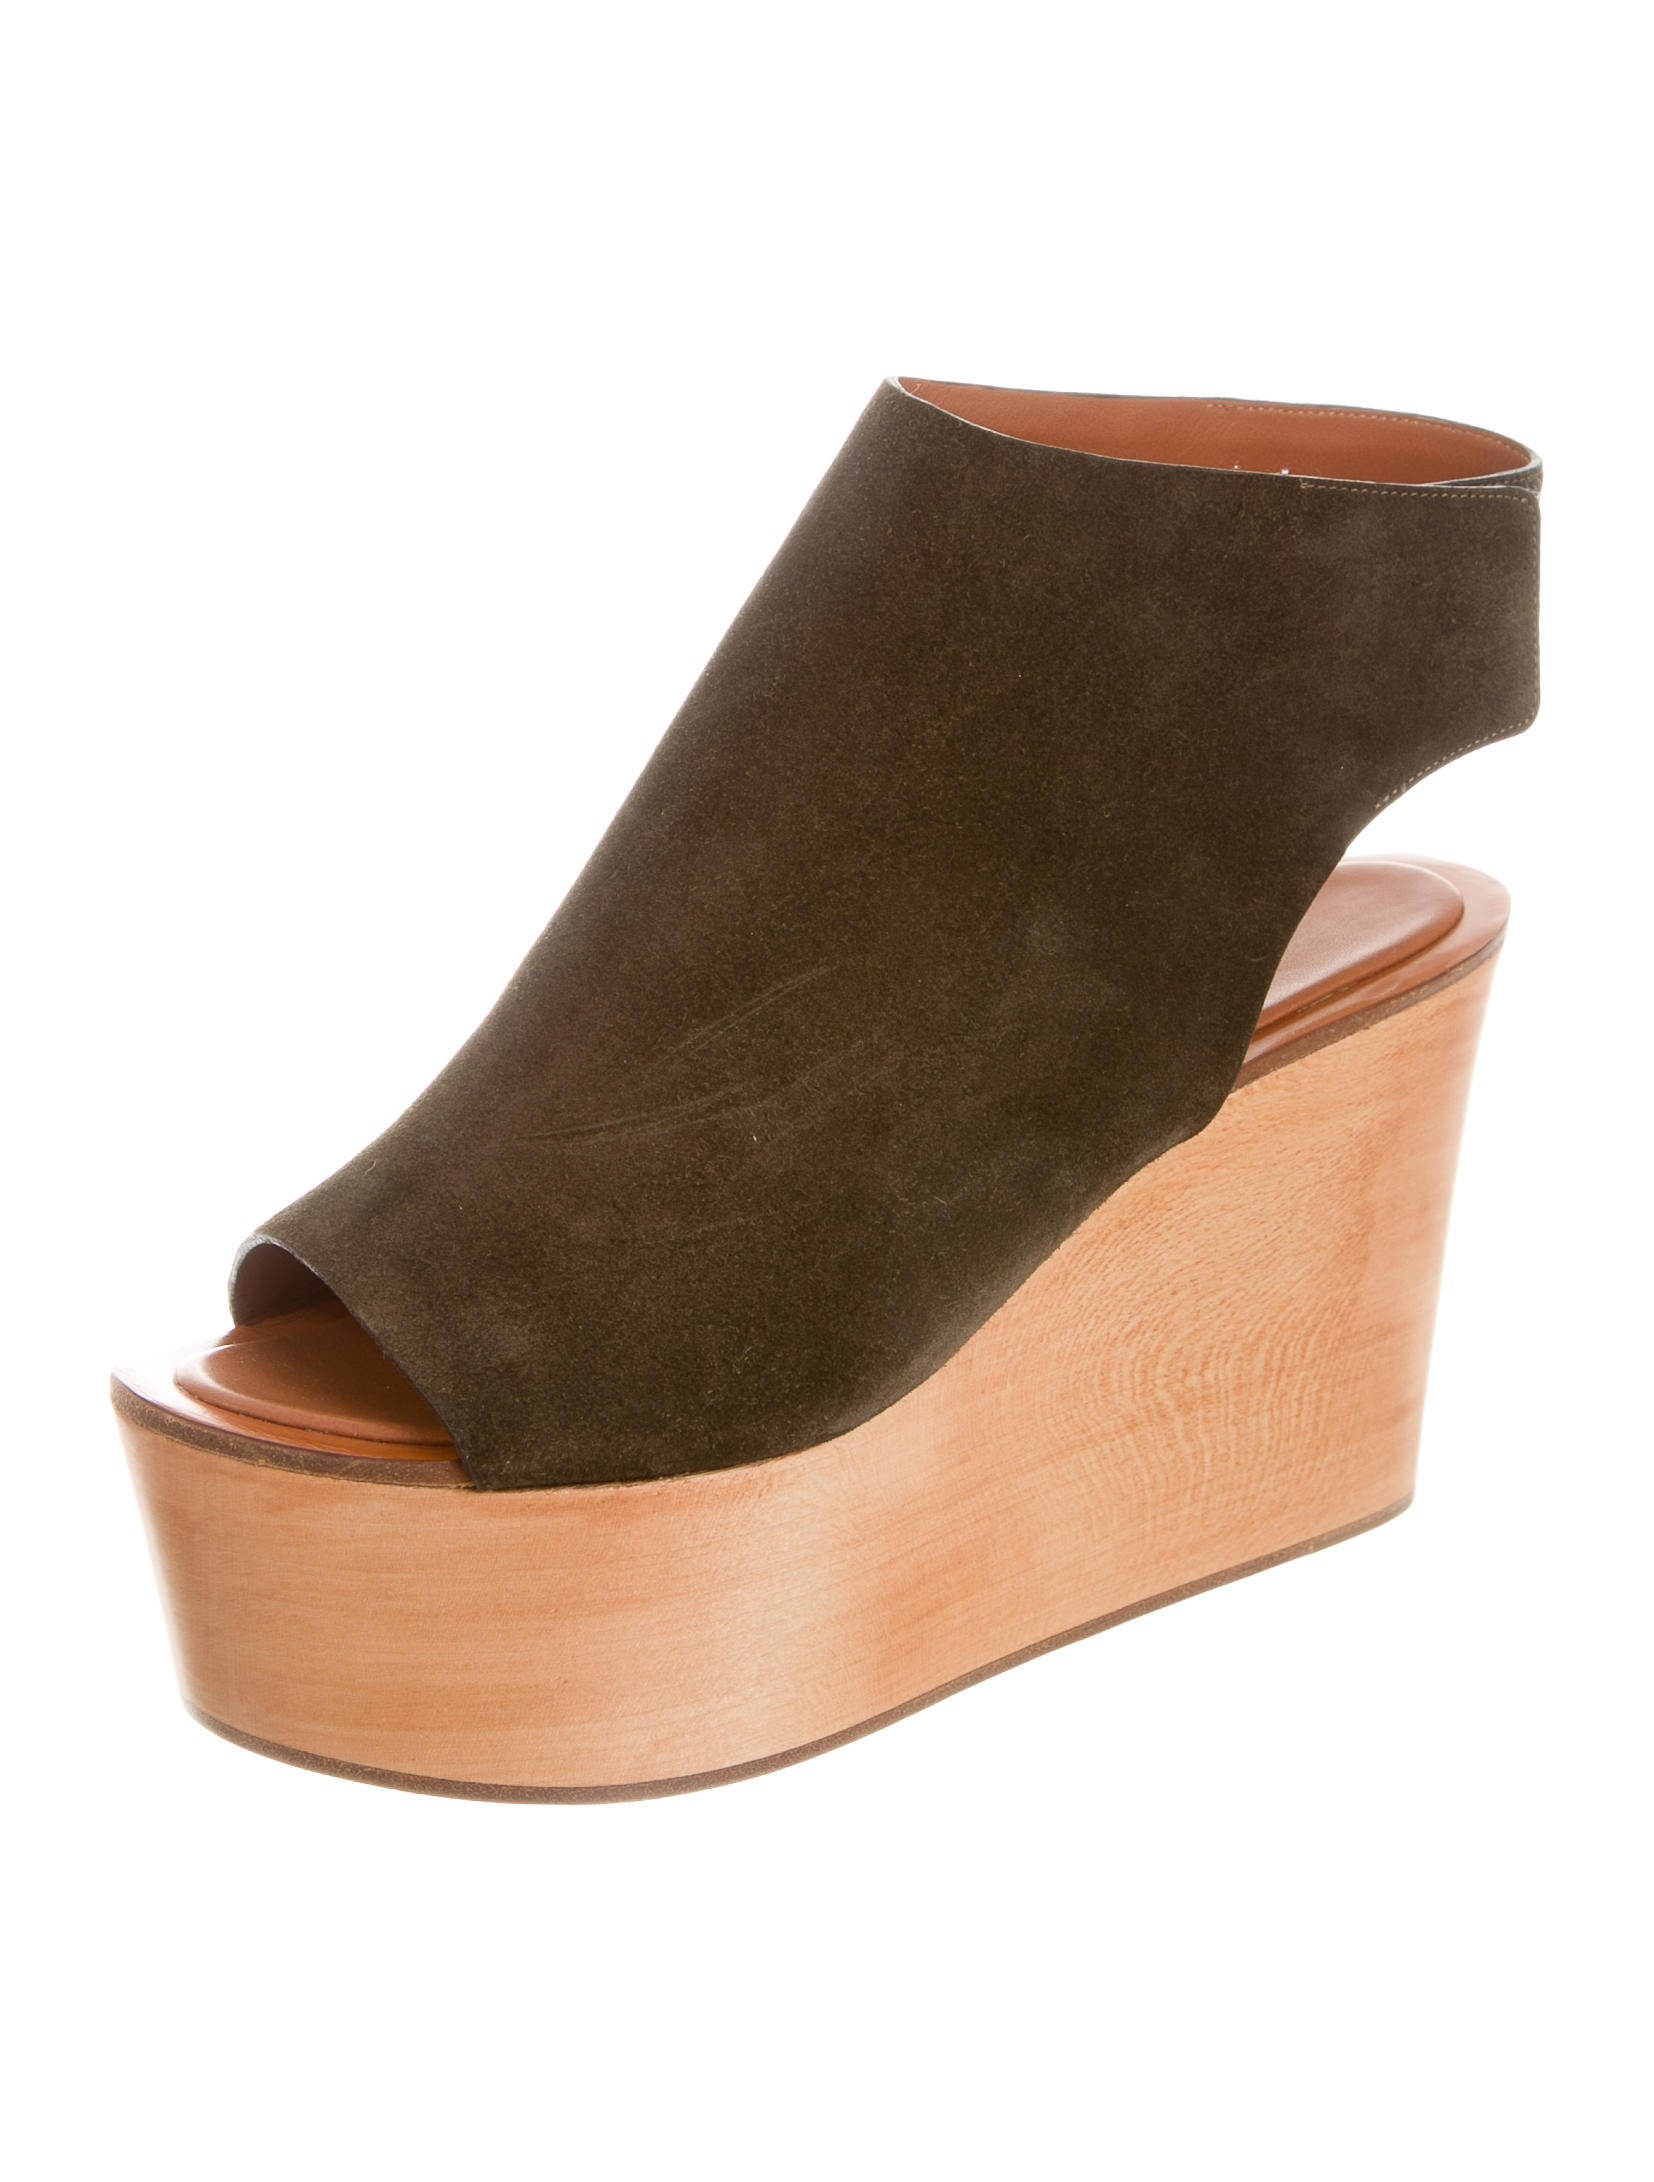 Céline Suede Wedge Sandals - Shoes - CEL38712 | The RealReal